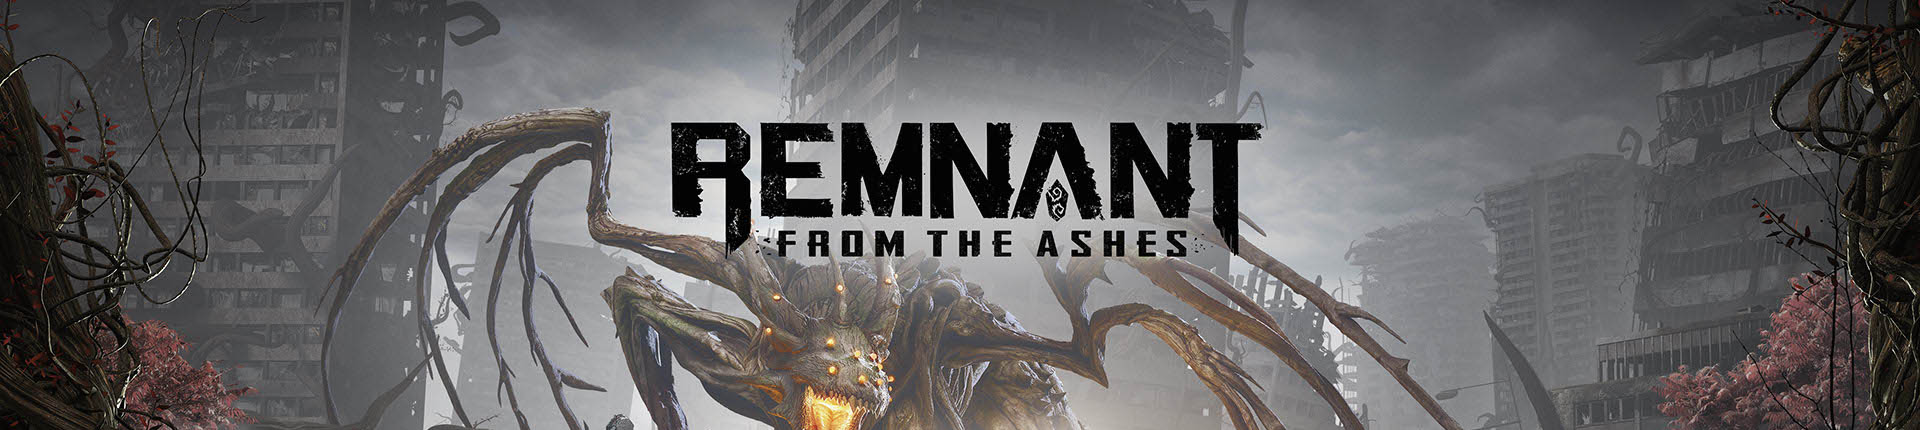 <a href='https://www.mightygamesmag.de/all-game-list/remnant-from-the-ashes/'>Zum Spiel</a>